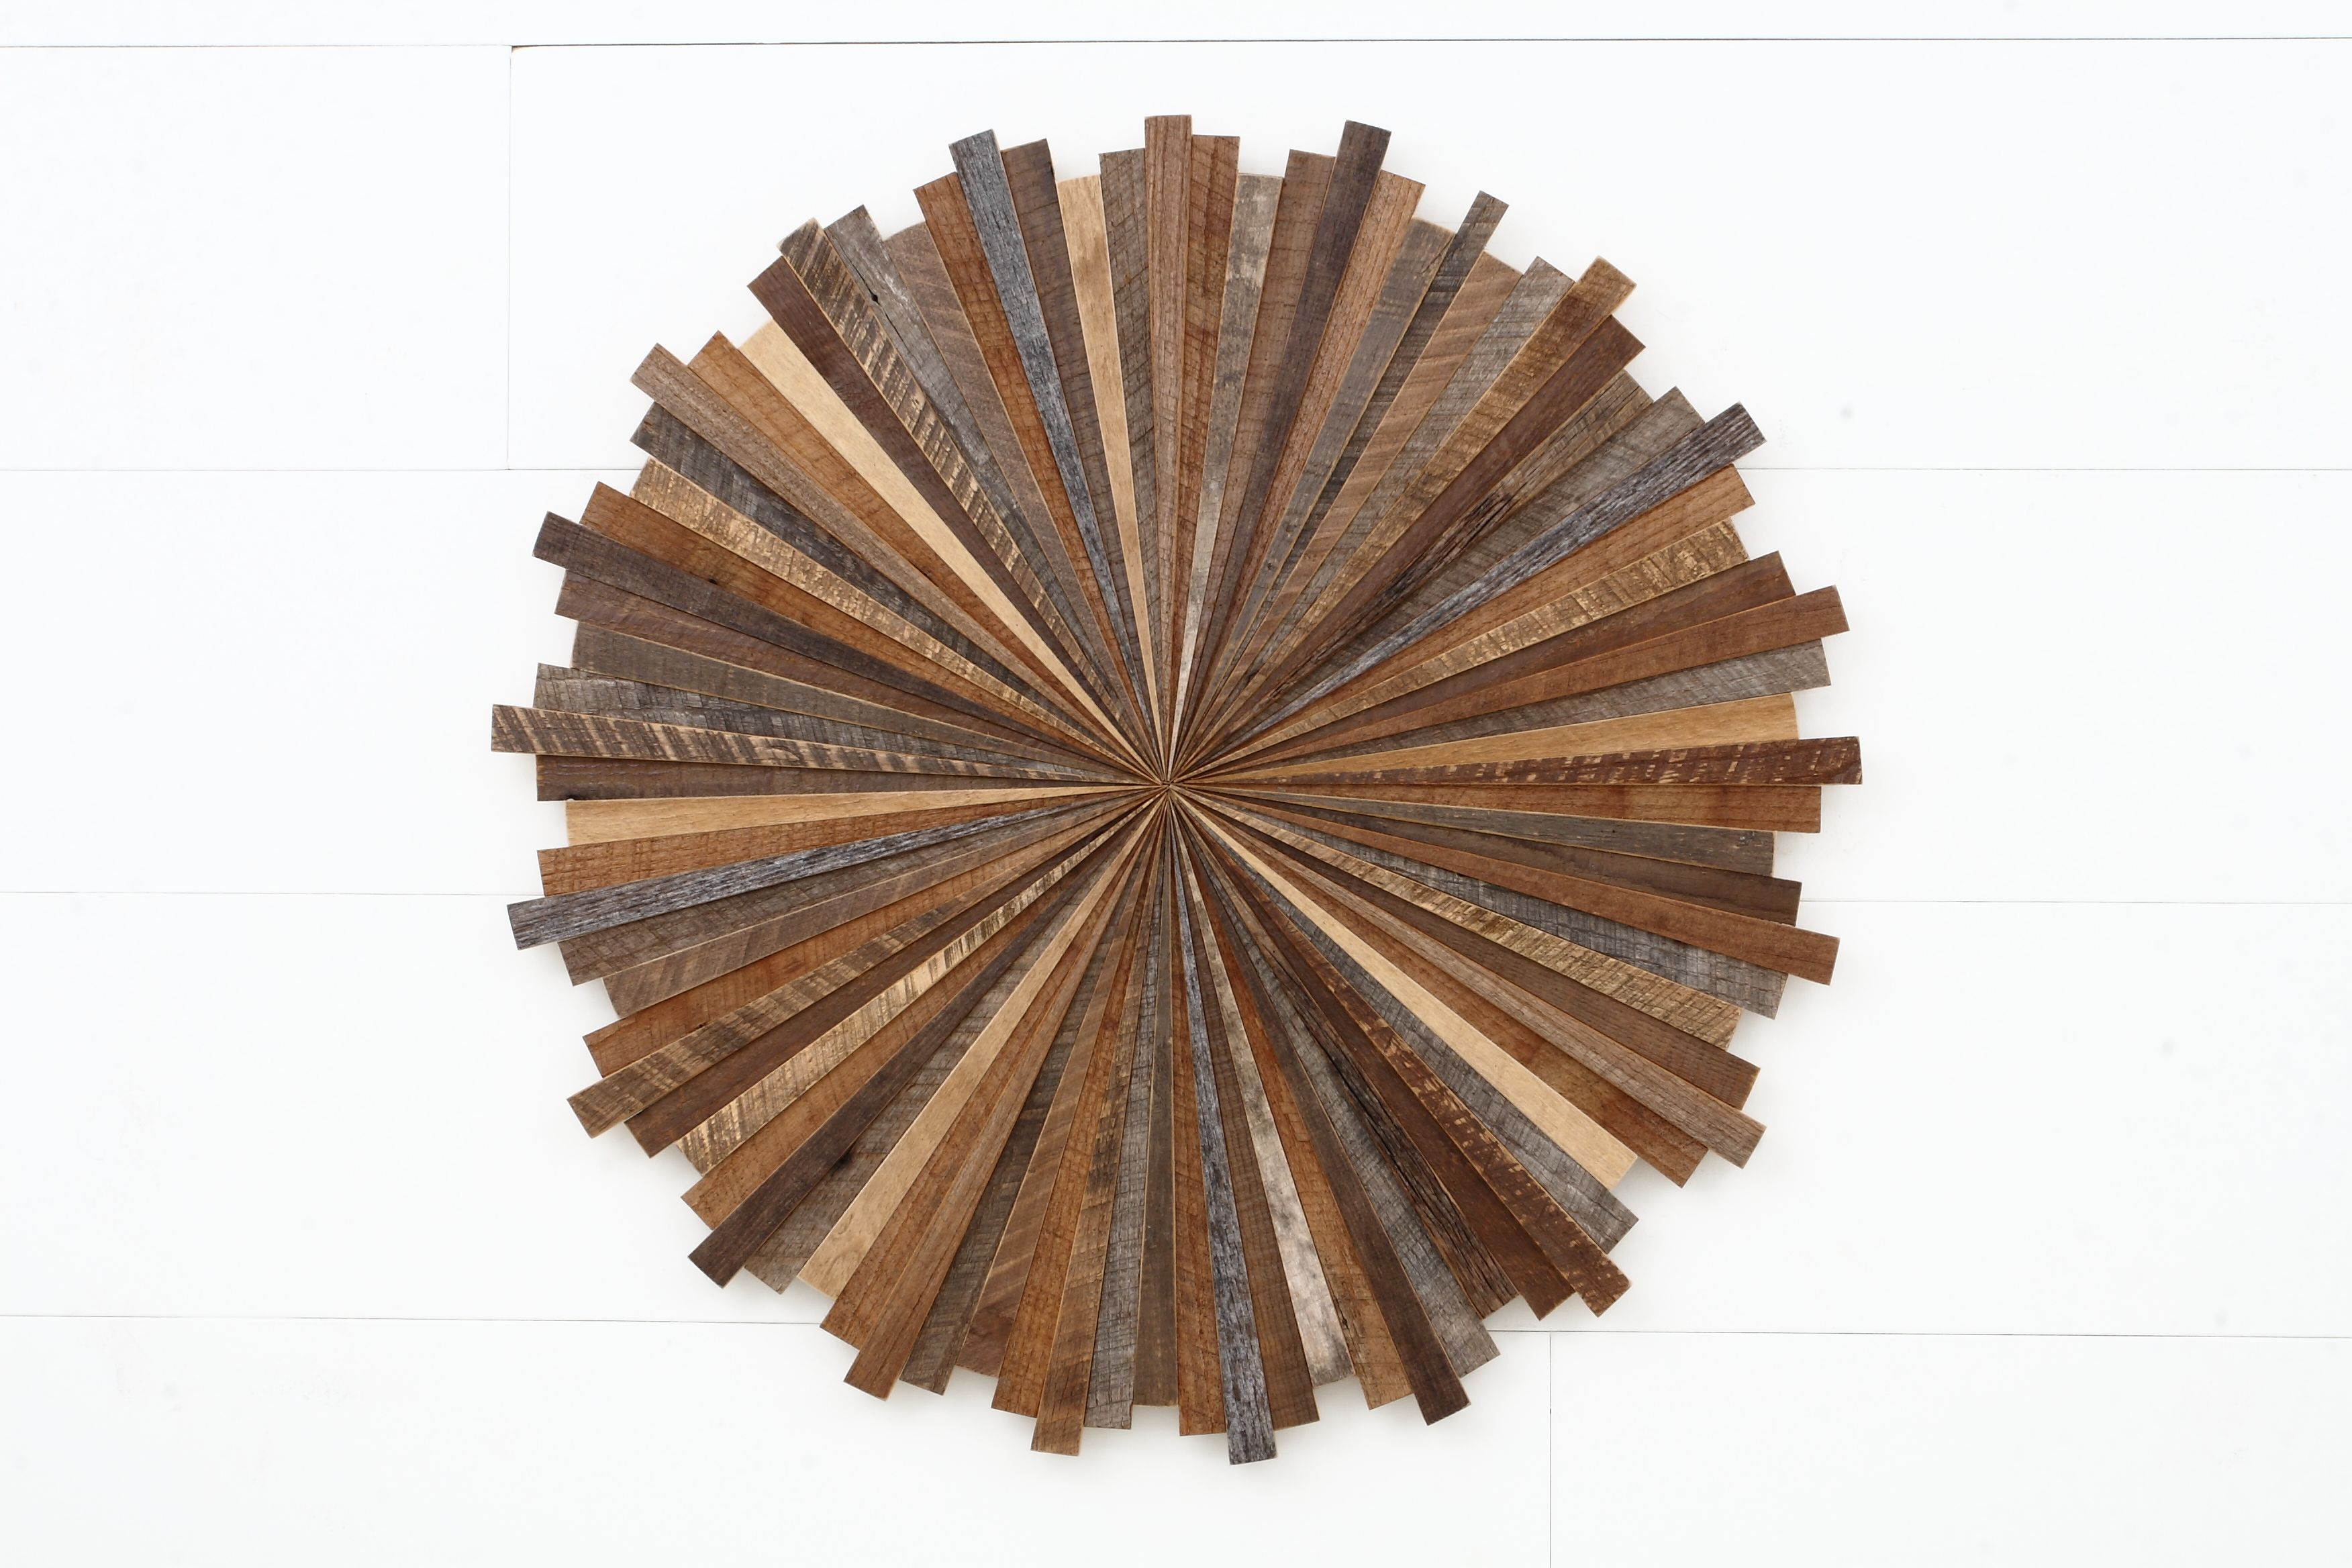 Barn Wood Wall Art hand crafted starburst wood wall art, made with old reclaimed